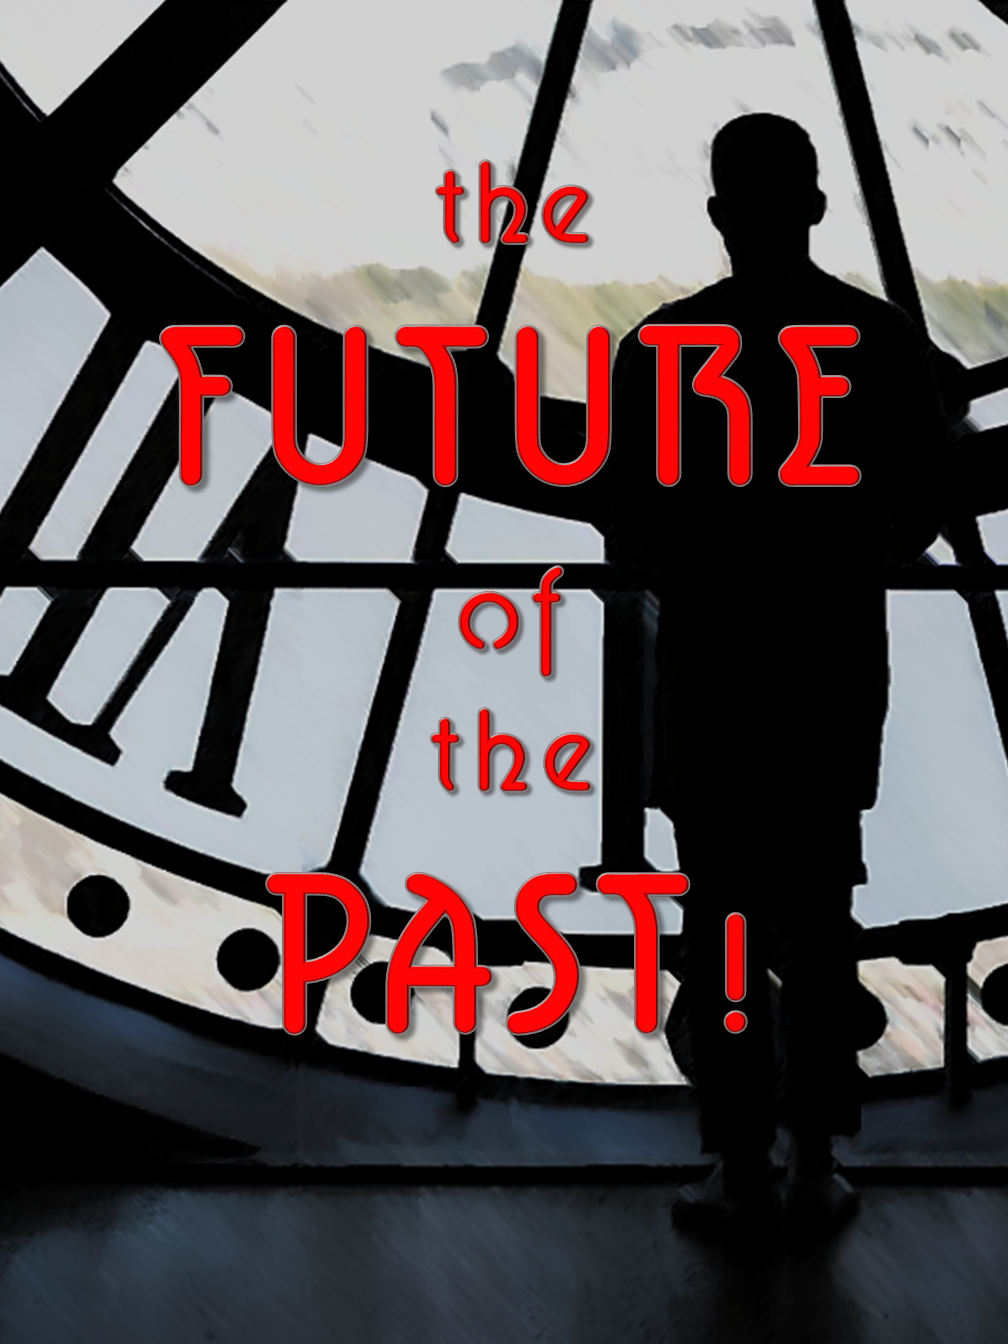 The Futureof  the Past!